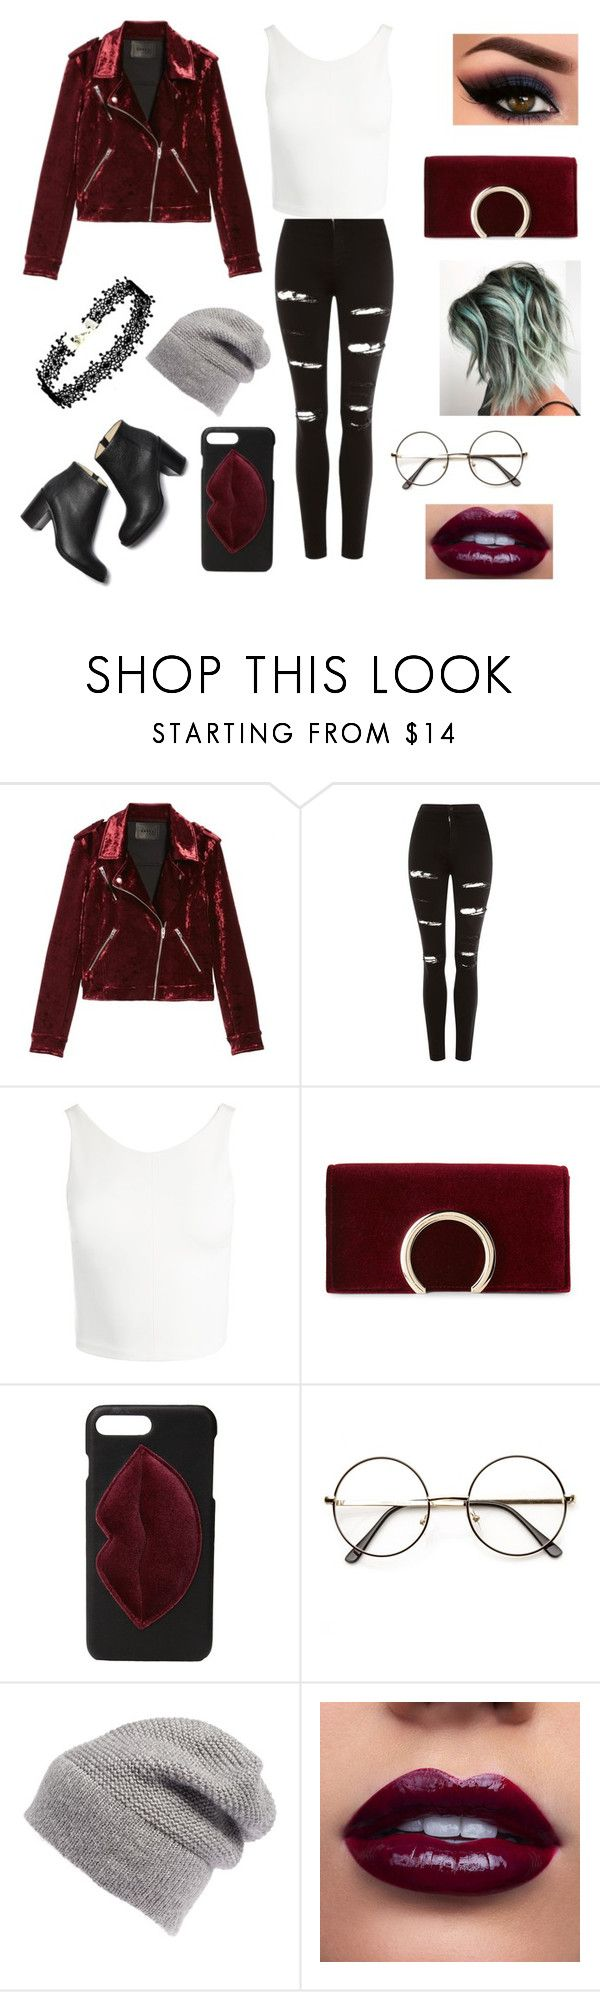 """""""Leather jacket"""" by b-a-volland ❤ liked on Polyvore featuring BLANKNYC, Topshop, Sans Souci, Jessica McClintock, Kendall + Kylie and Rebecca Minkoff"""